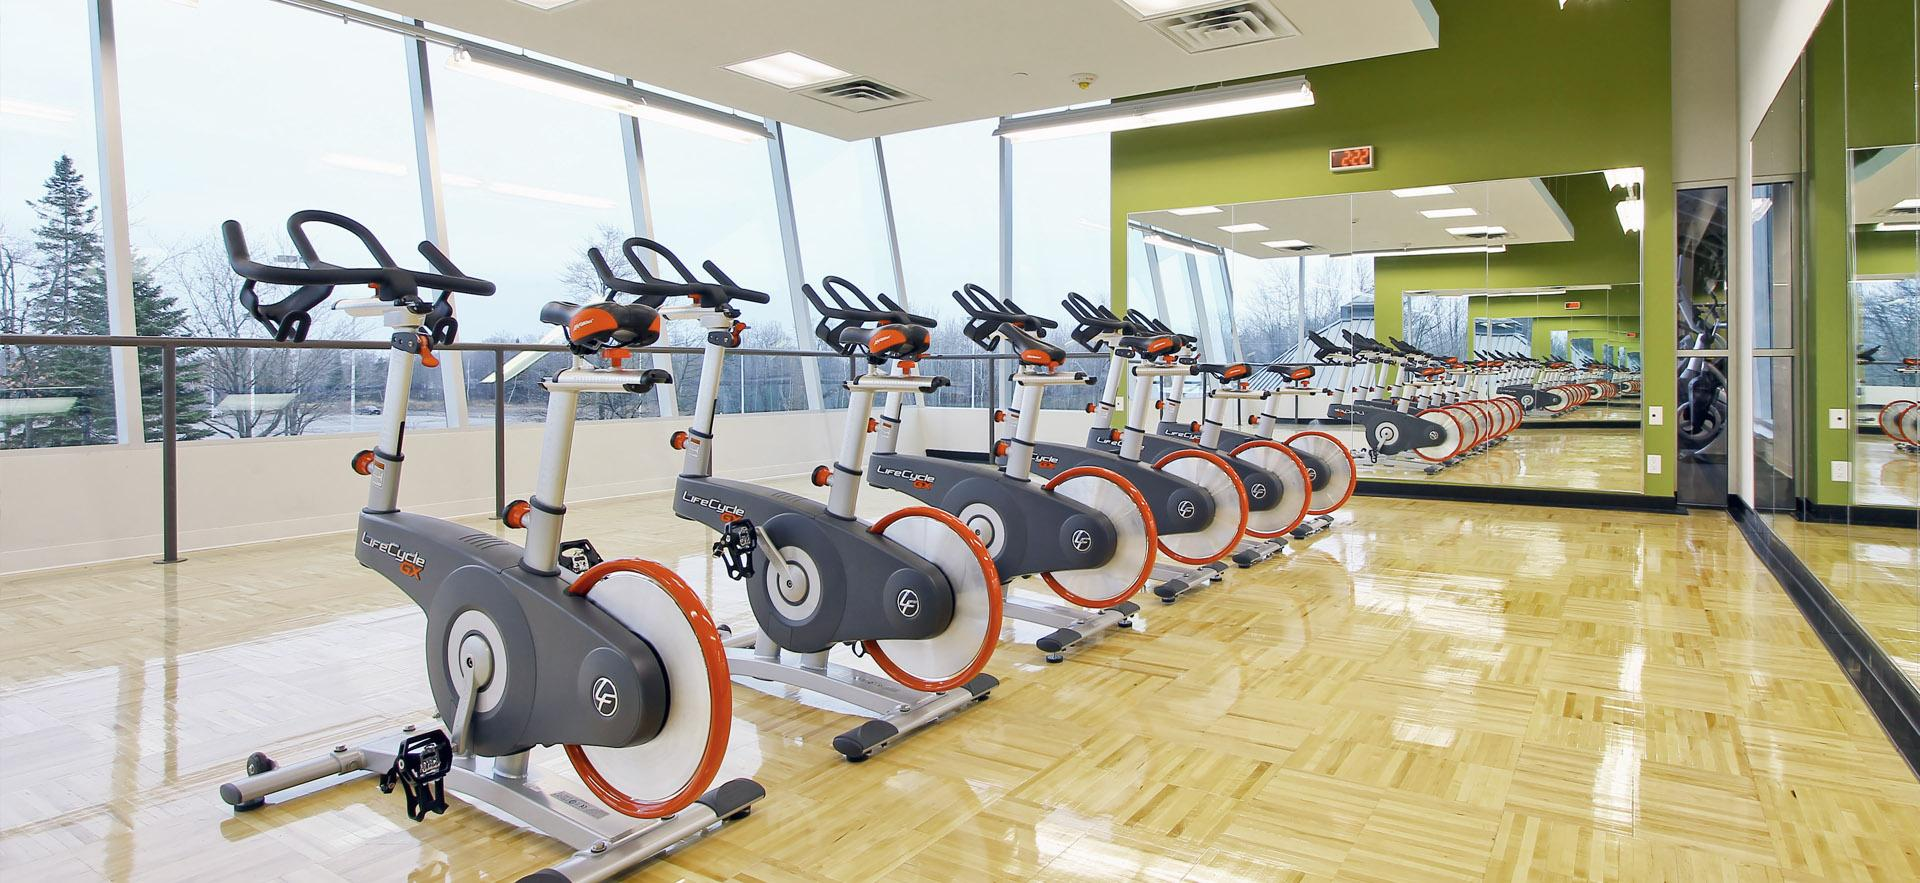 Row of bikes in fitness room